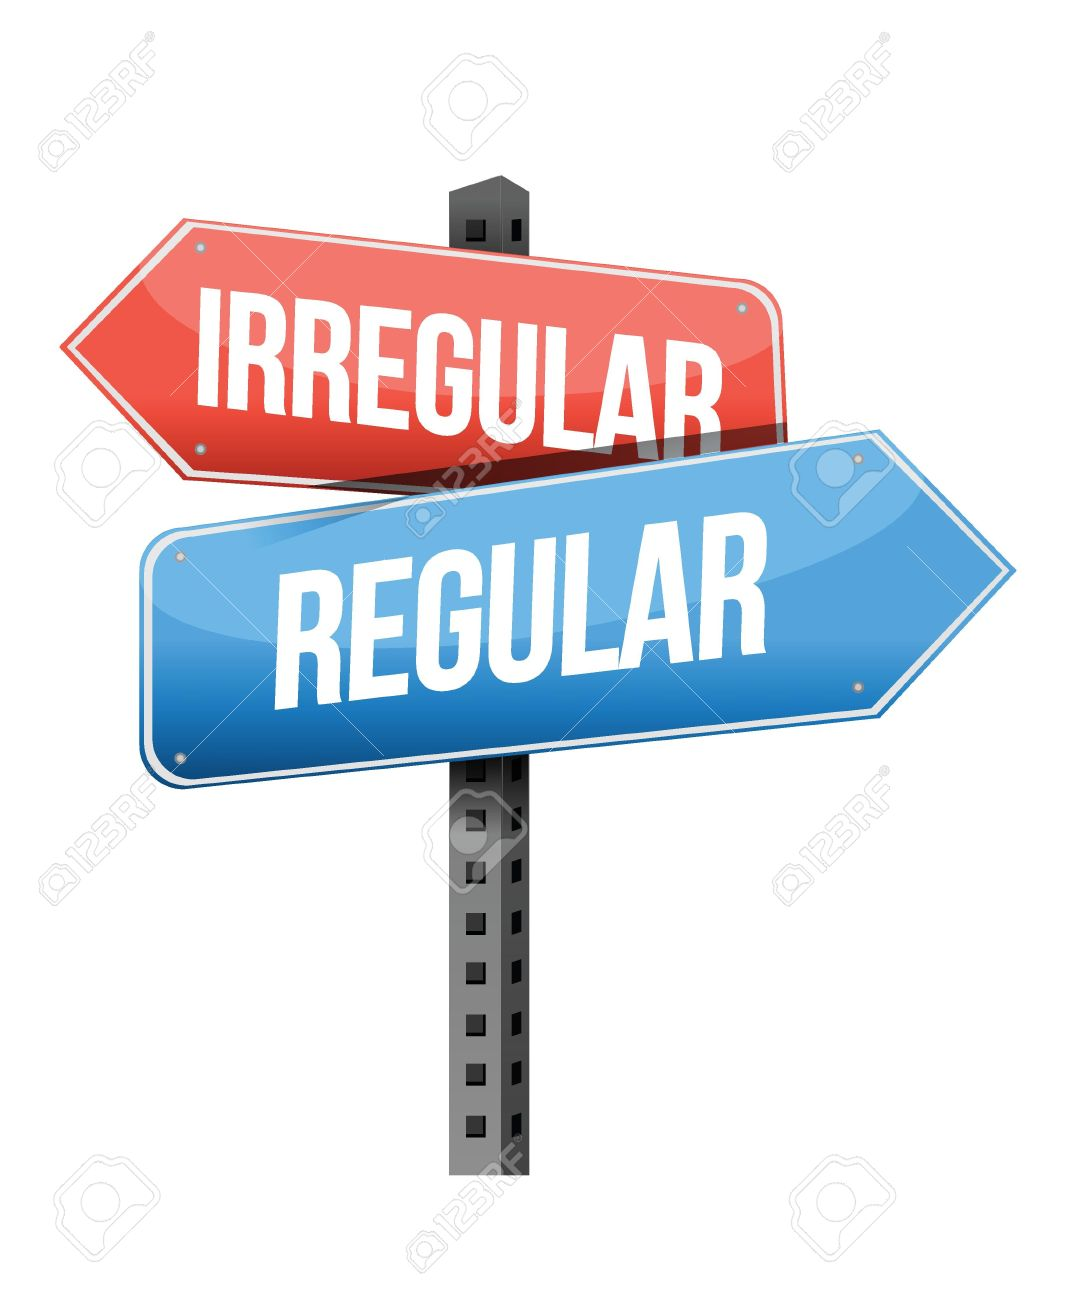 Irregular, Regular Road Sign Illustration Design Over A White.